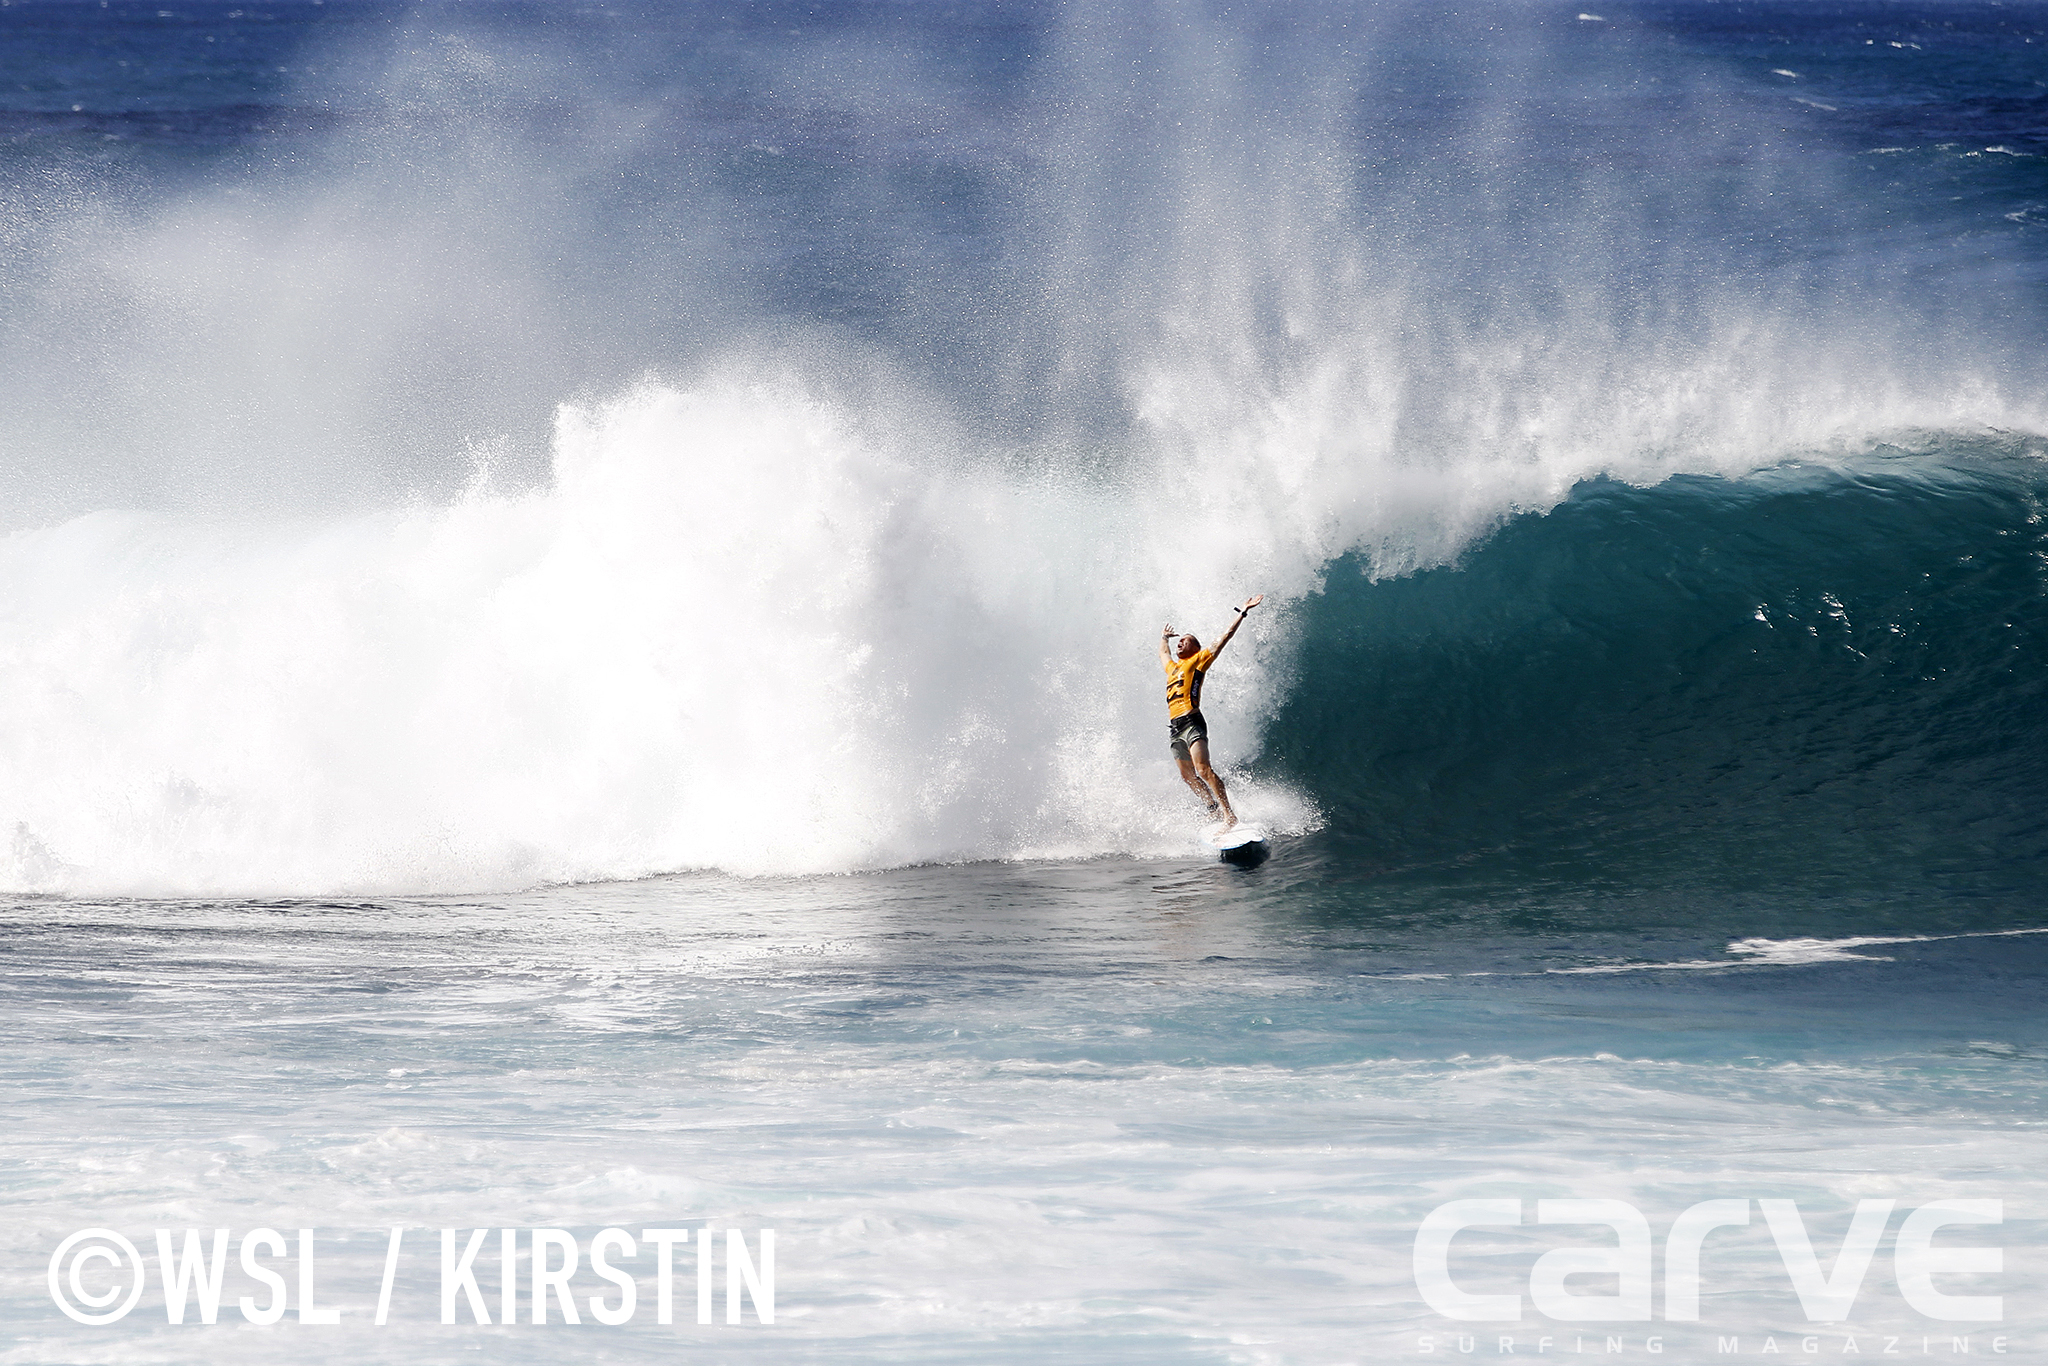 "IMAGE CAPTION (Wednesday December 16, 2015): Mick Fanning of Australia (pictured) winning his Round 4 heat to advance directly to the Quarter Finals and remain in contention for a fourth WSL World Title at the Billabong Pipe Masters. IMAGE CREDIT: WSL / Kirstin PHOTOGRAPHER: Kirstin Scholtz SOCIAL MEDIA TAG: @wsl @kirstinscholtz The images attached or accessed by link within this email (""Images"") are hand-out images from the Association of Surfing Professionals LLC (""World Surf League""). All Images are royalty-free but for editorial use only. No commercial or other rights are granted to the Images in any way. The Images are provided on an ""as is"" basis and no warranty is provided for use of a particular purpose. Rights to an individual within an Image are not provided. Copyright to the Images is owned by World Surf League. Sale or license of the Images is prohibited. ALL RIGHTS RESERVED."